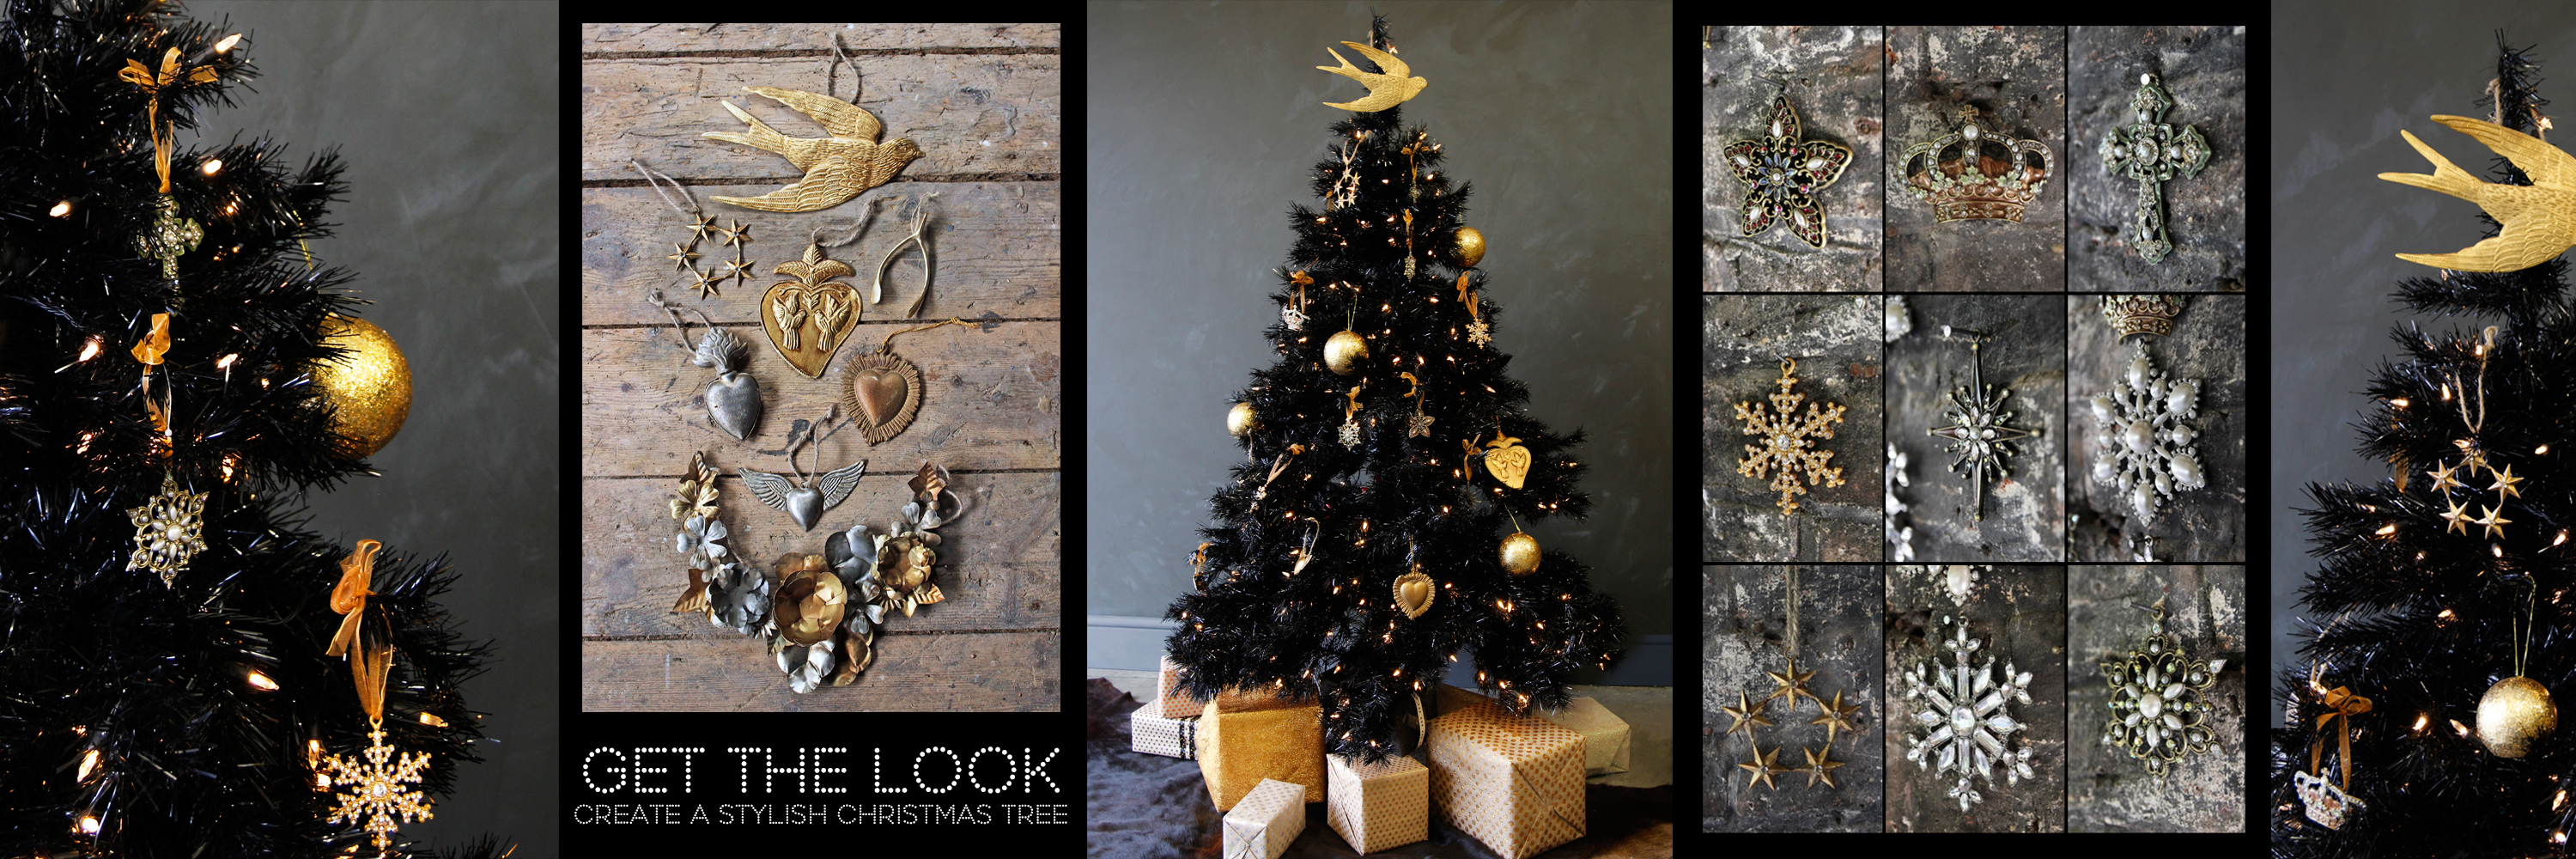 Get The Look - Christmas